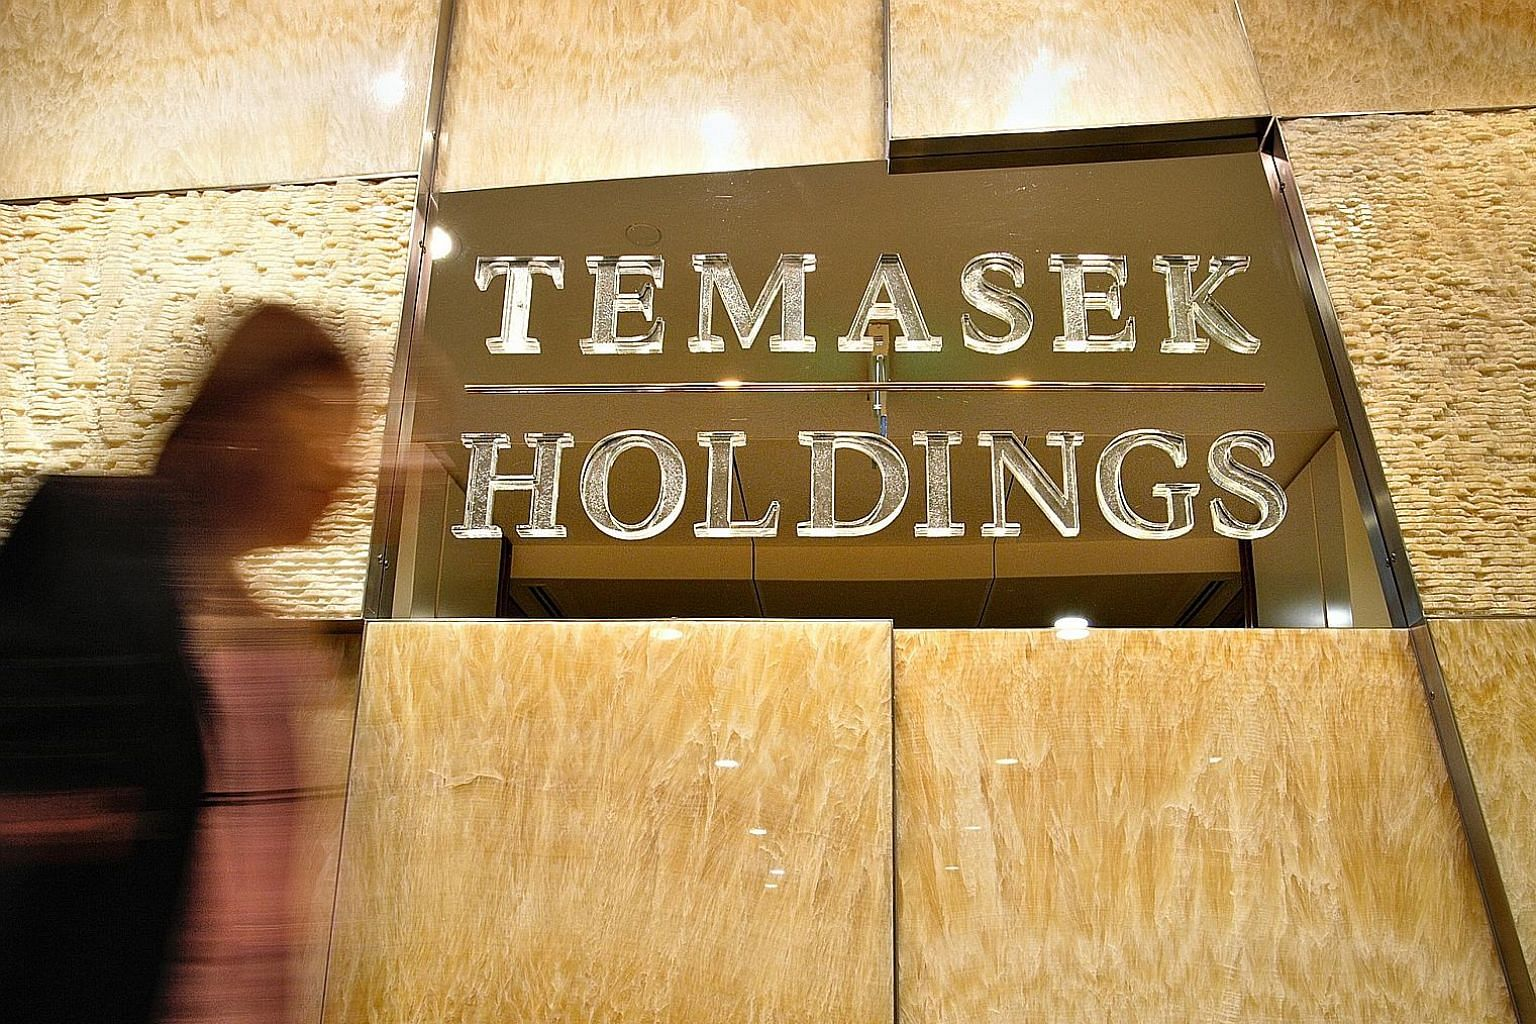 The T2023-S$ Temasek Bond offers a fixed annual coupon of 2.7 per cent payable twice a year, with the principal to be repaid in 2023. It has been trading on the mainboard of the Singapore Exchange since Oct 26. As it was trading at $1.017 apiece on T